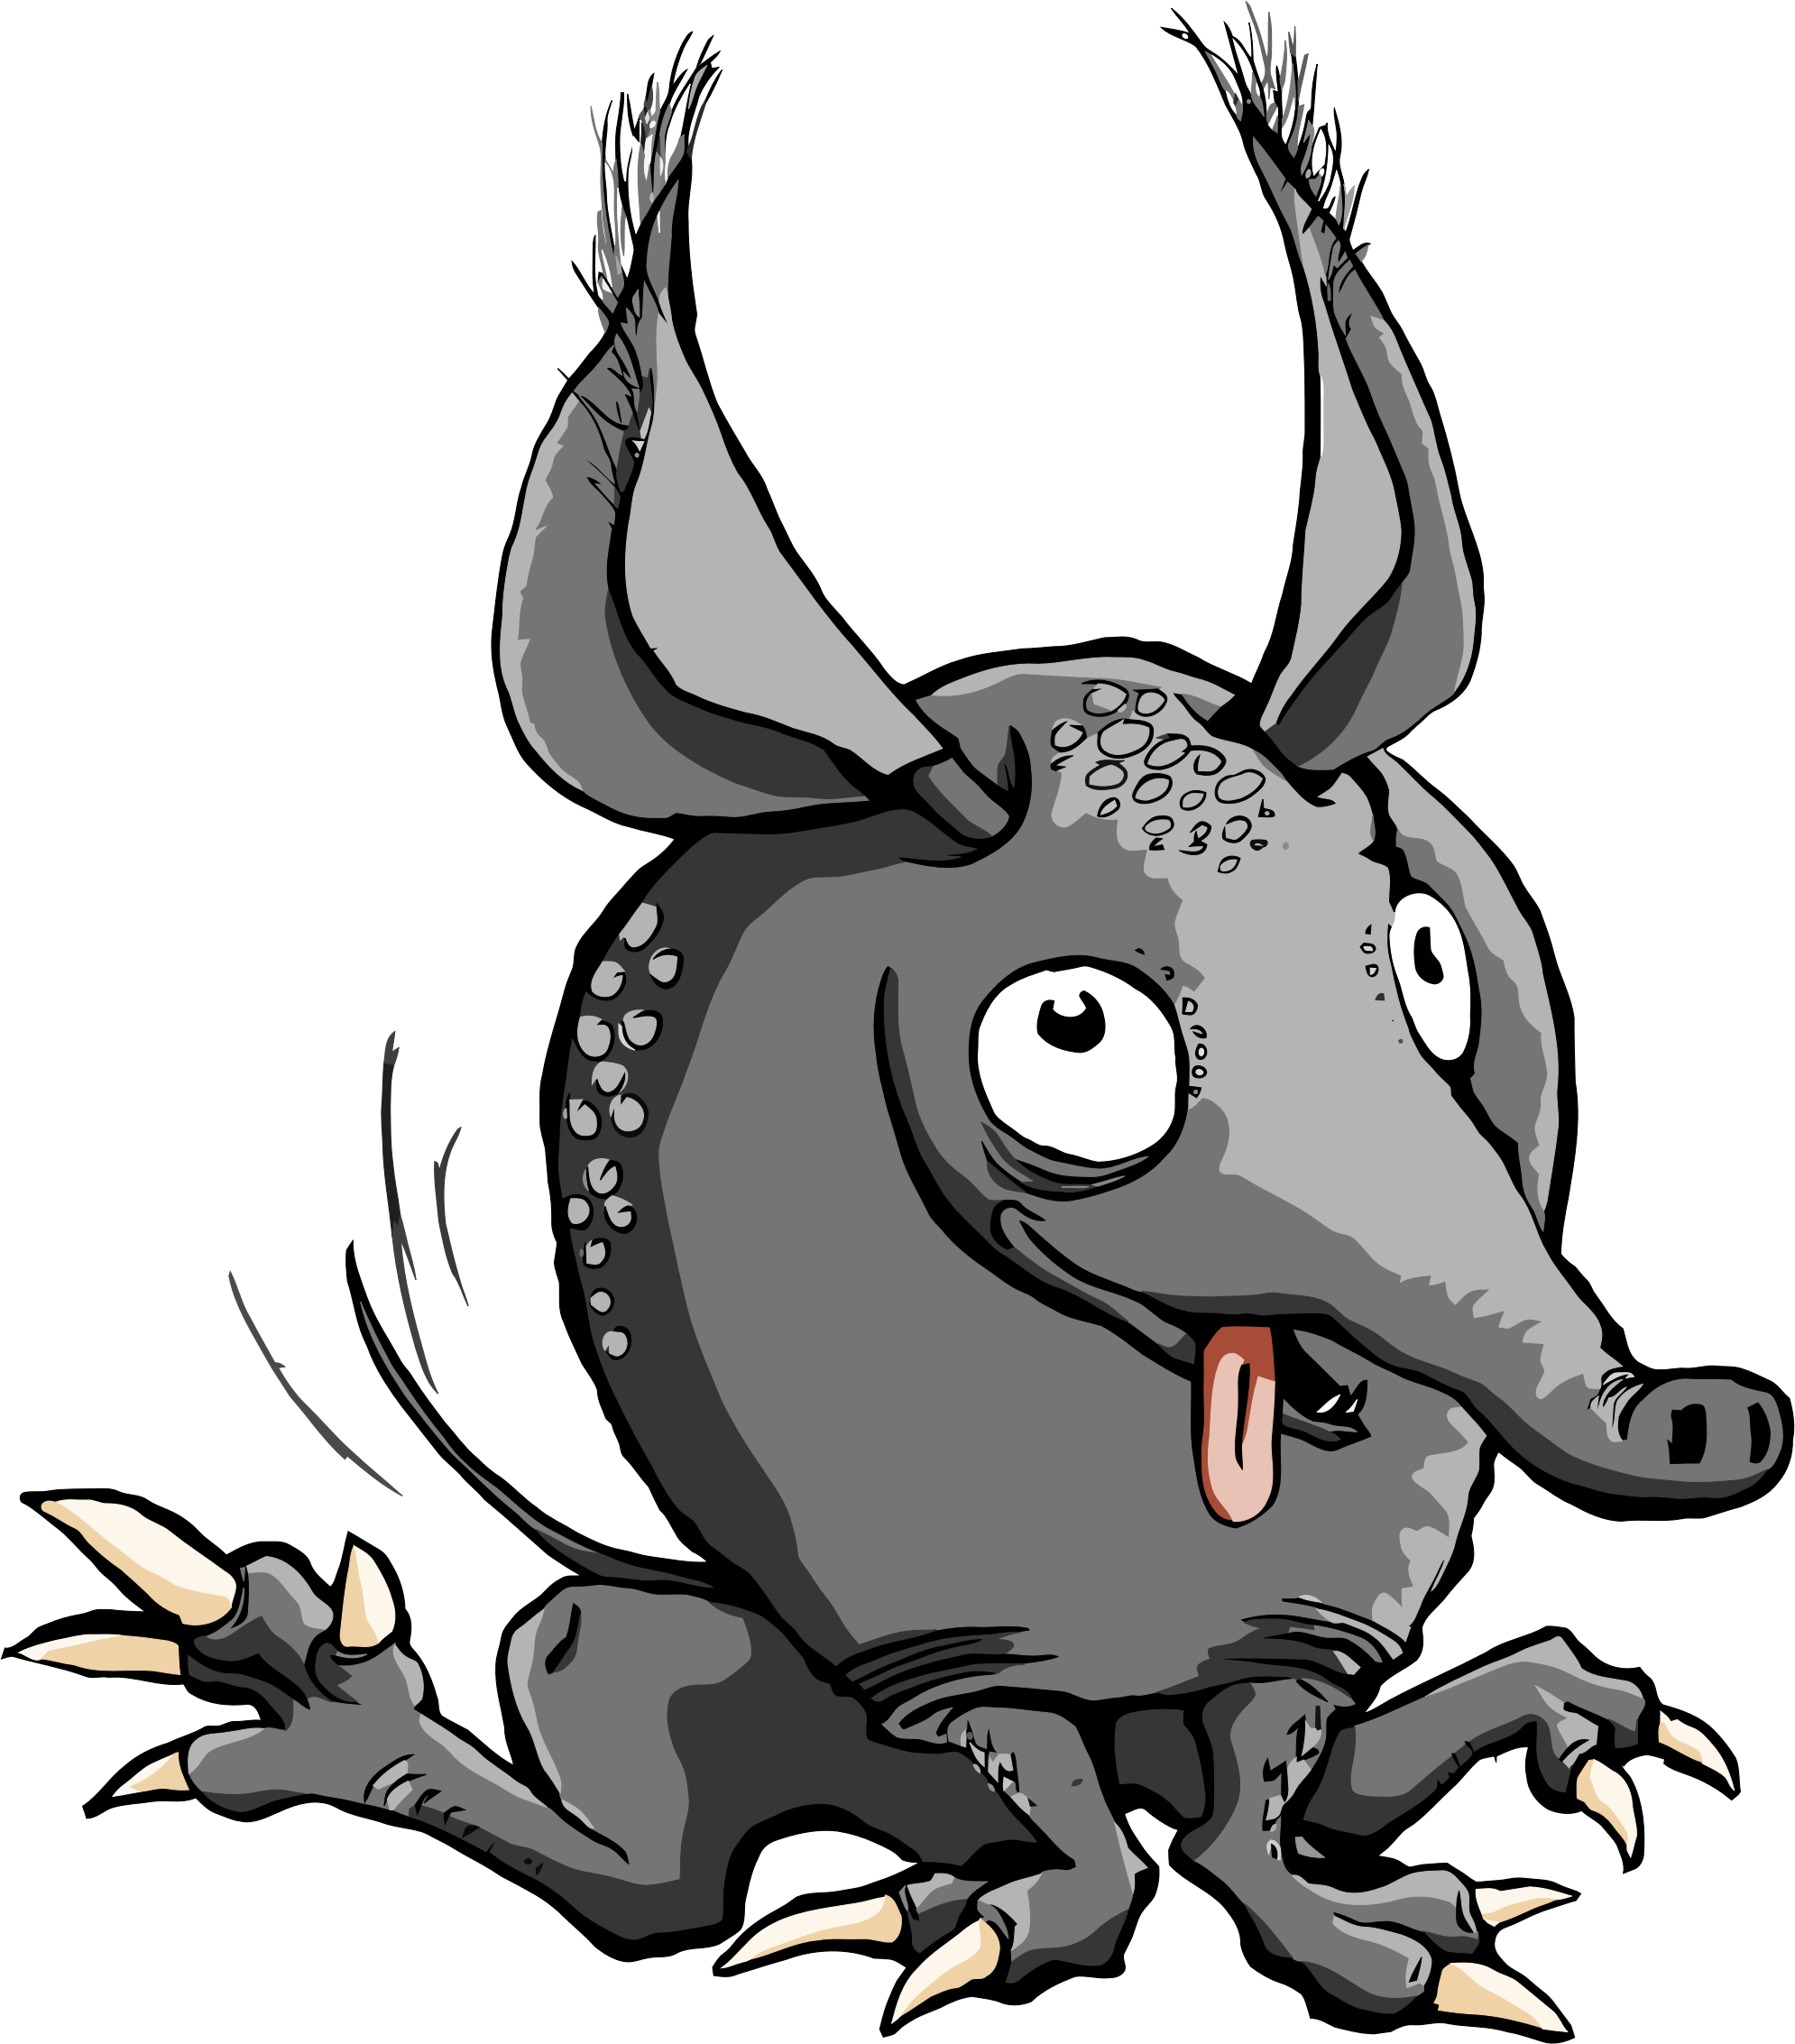 Armadillo clipart. Cartoon big image png